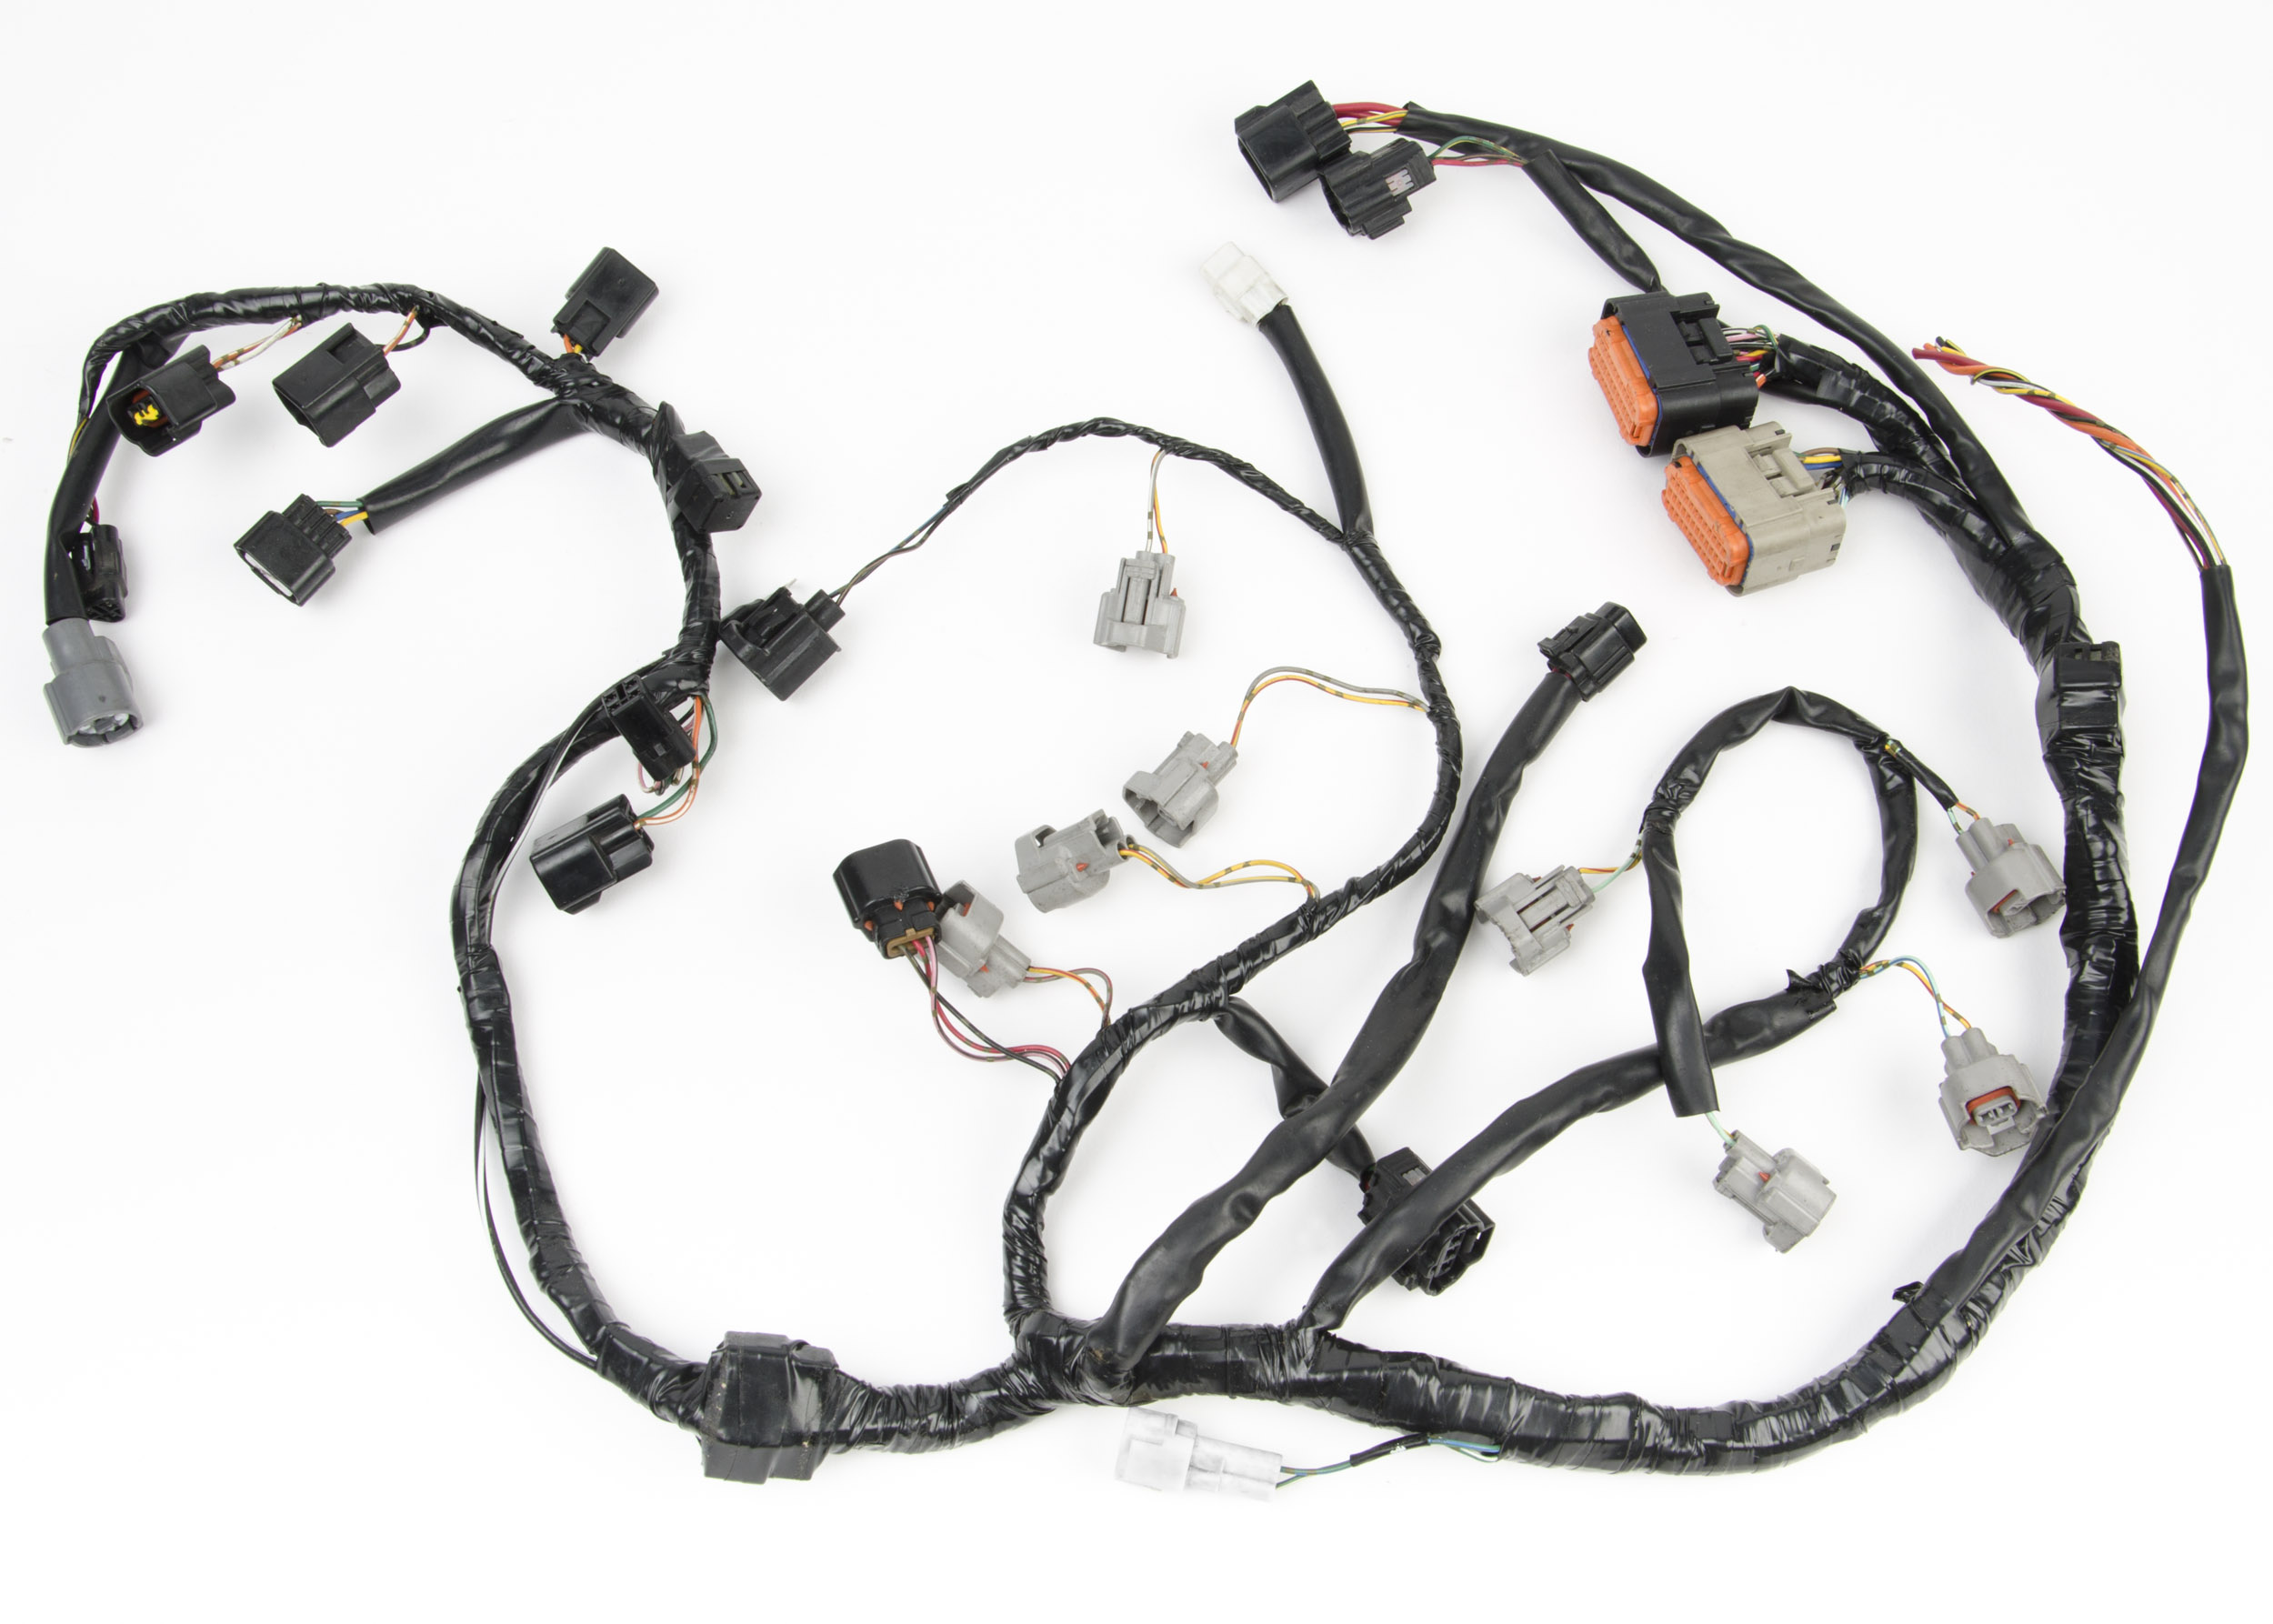 2008 r6 wiring harness diagram #17 Ninja 250 Wiring Diagram 2008 r6 wiring harness diagram